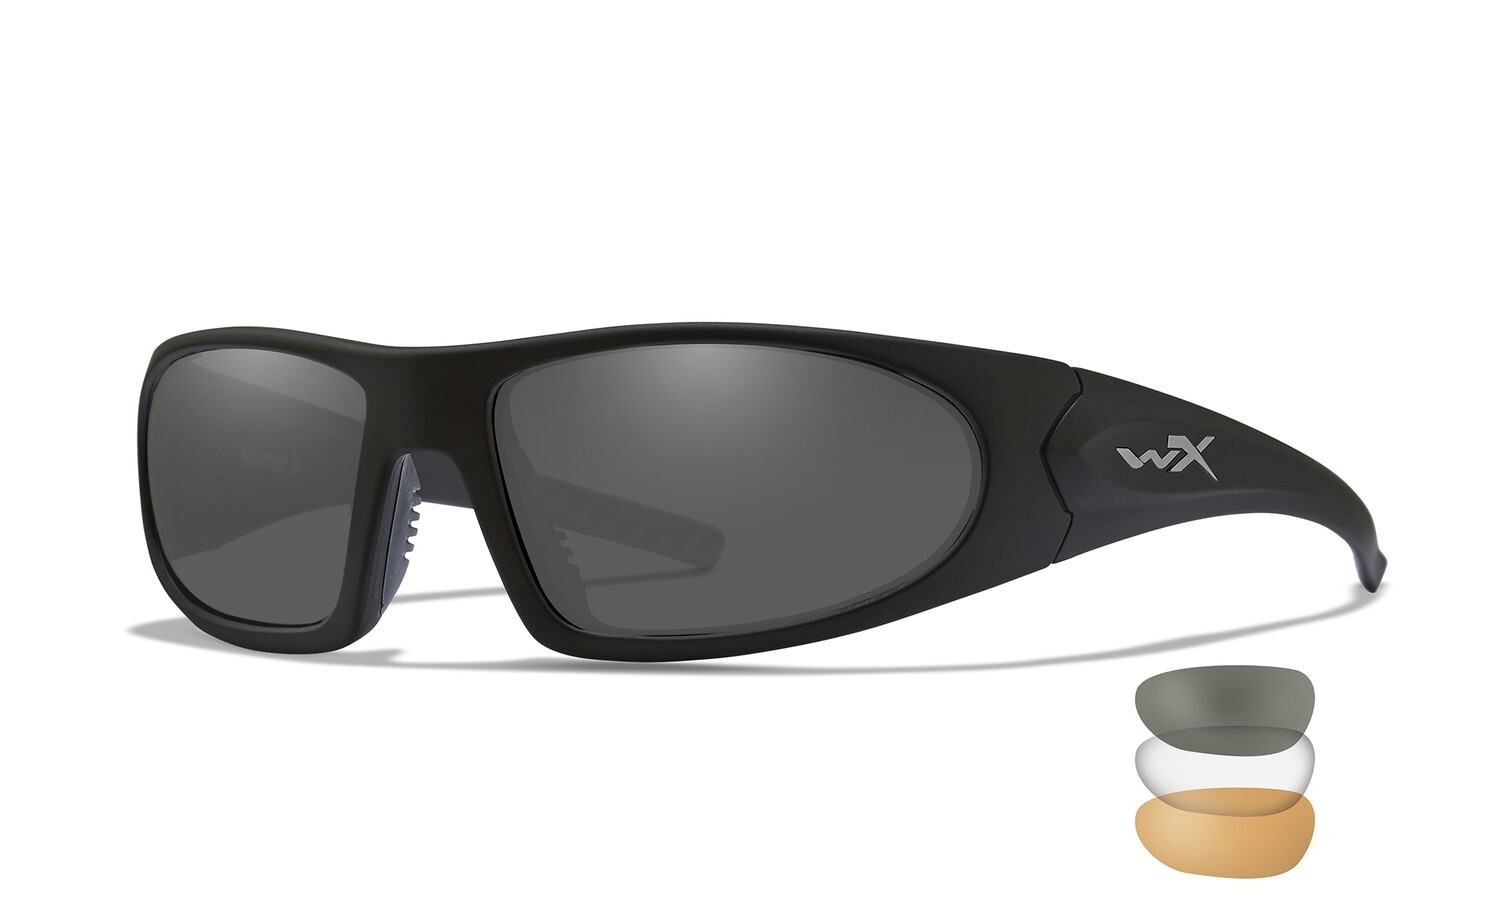 Wiley-x, Romer 3, 3 lens interchangeable